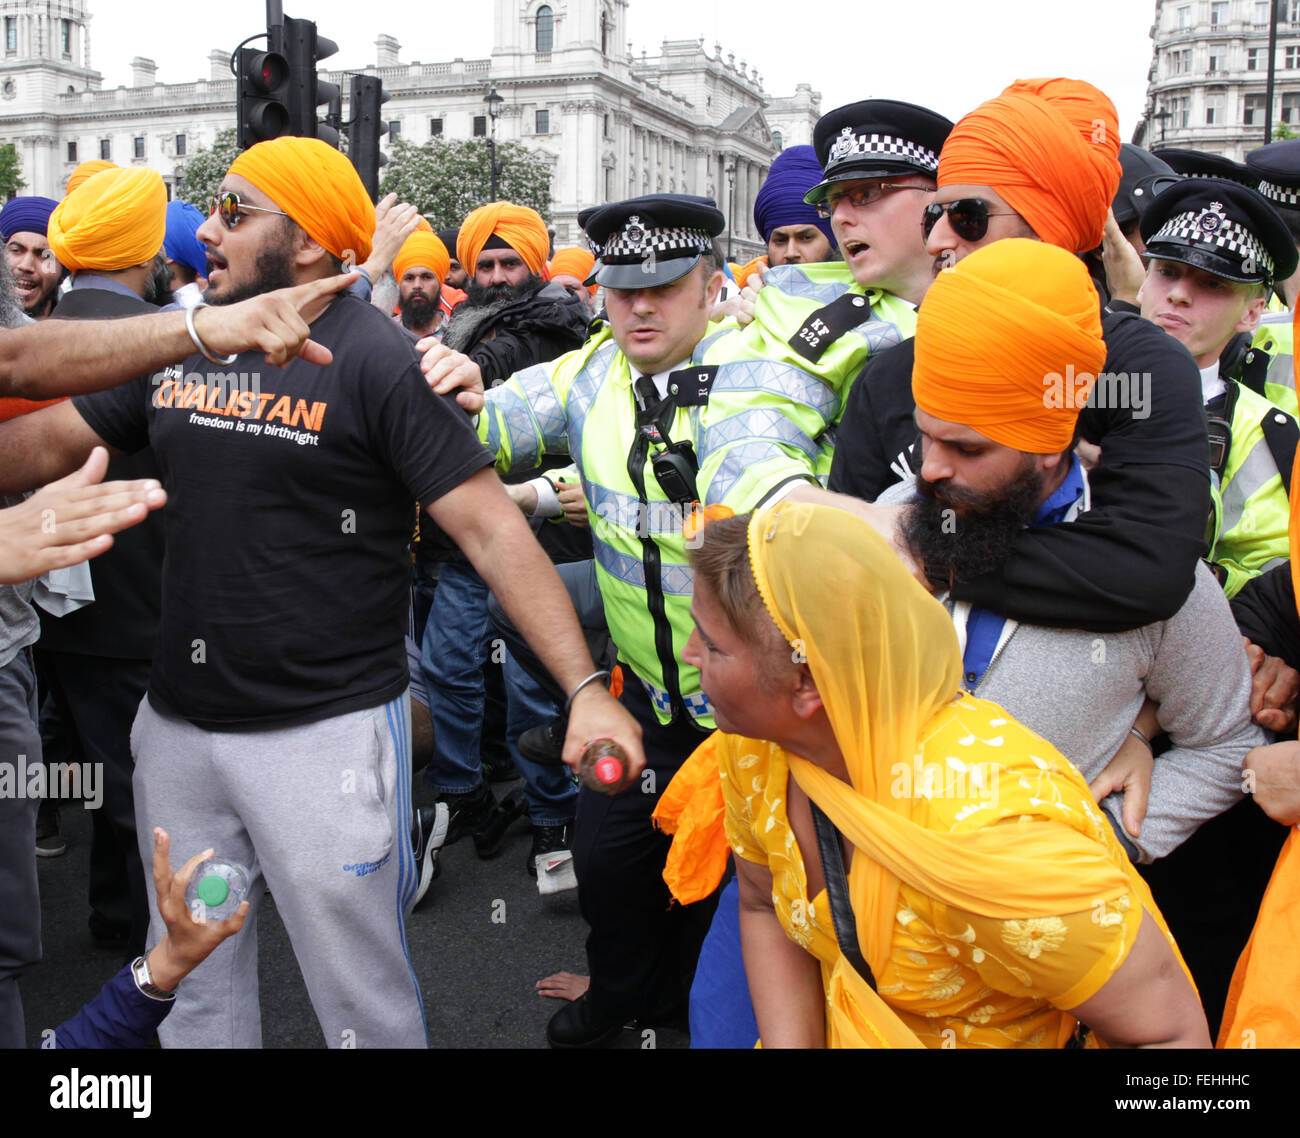 London, UK, 15th July 2015: Sikh protestors cause traffic chaos as they sit in the road outside the Houses of Parliament. Stock Photo